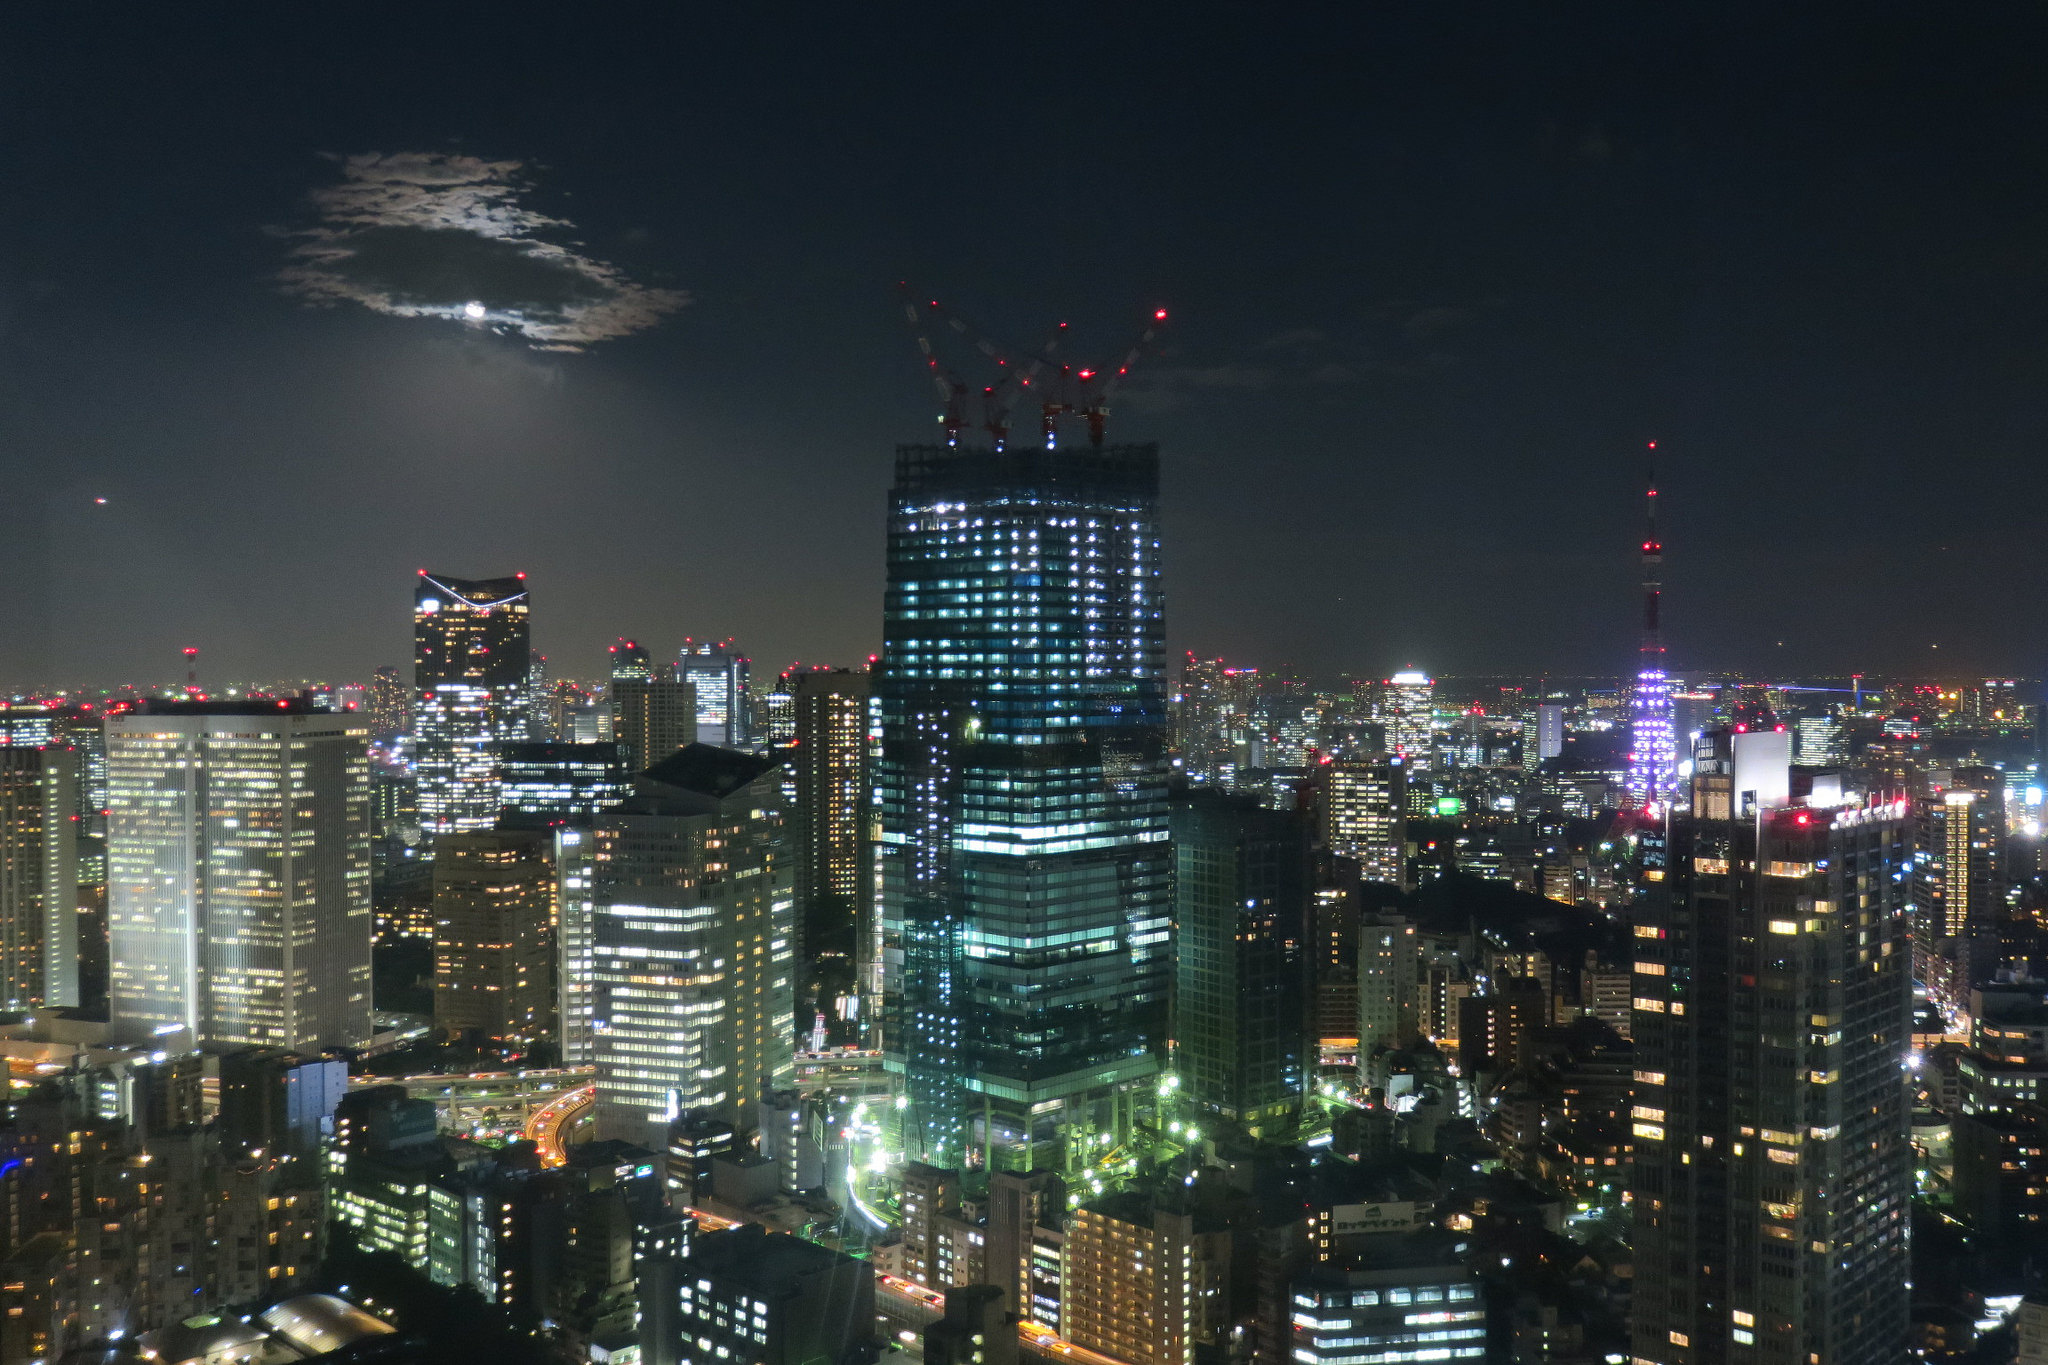 Reasons to Go to Roppongi